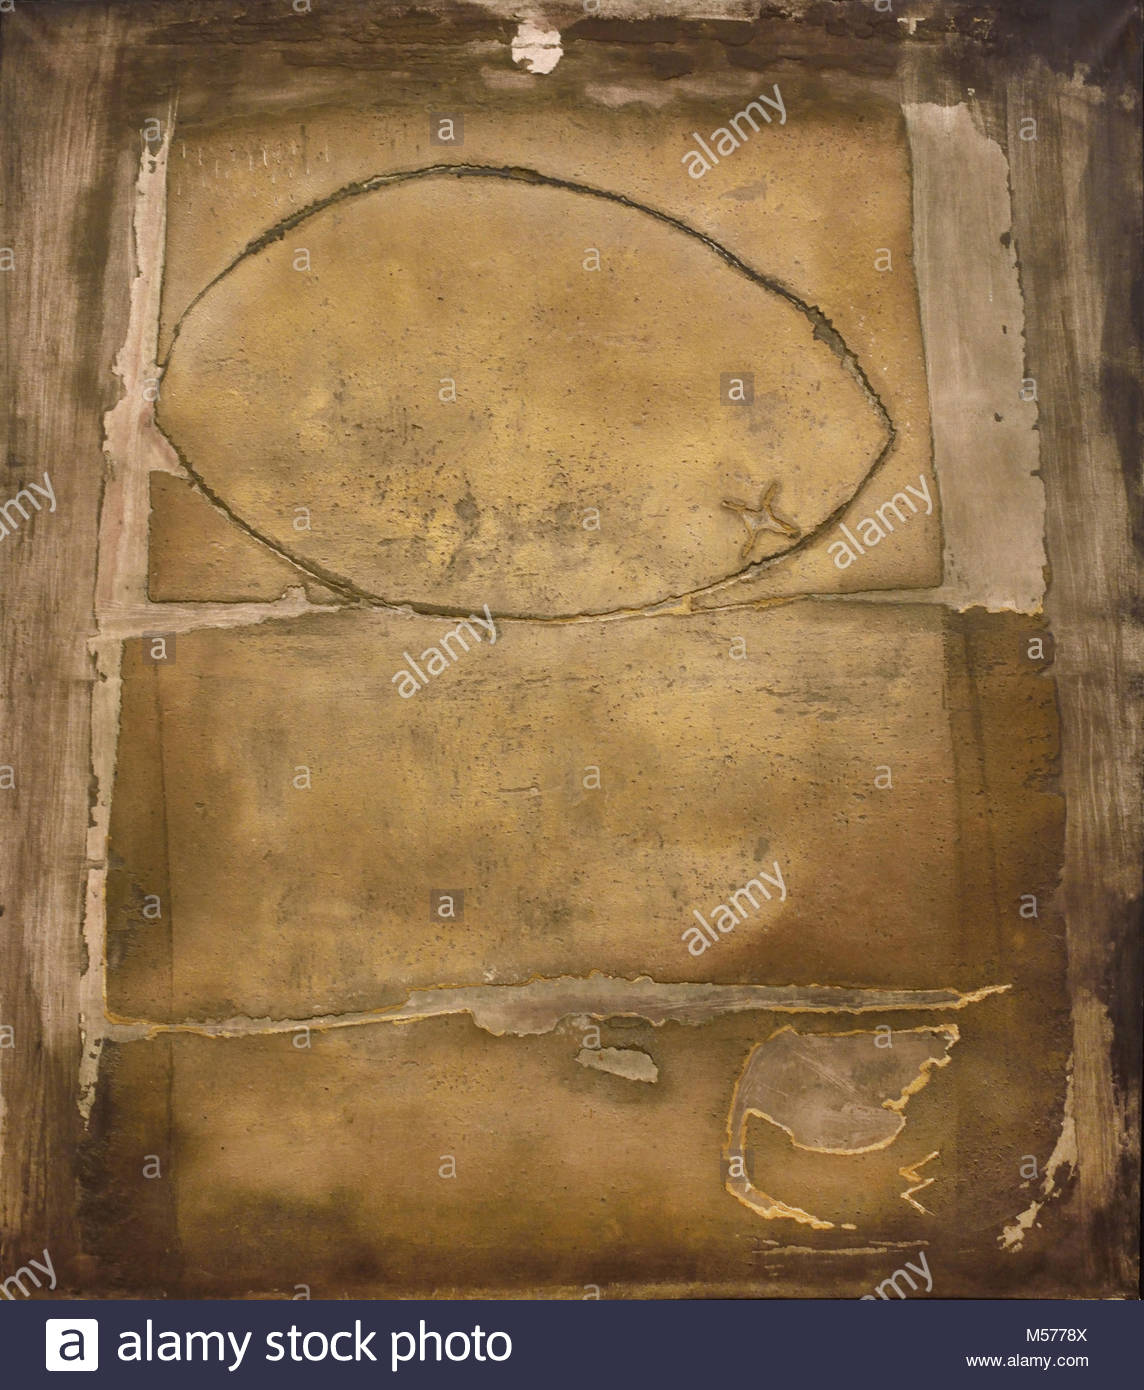 Large Oval or Painting 1955 Antoni Tàpies, 1923-2012, Mixed media on canvas, 20th, century, Spain, Spanish, - Stock Image